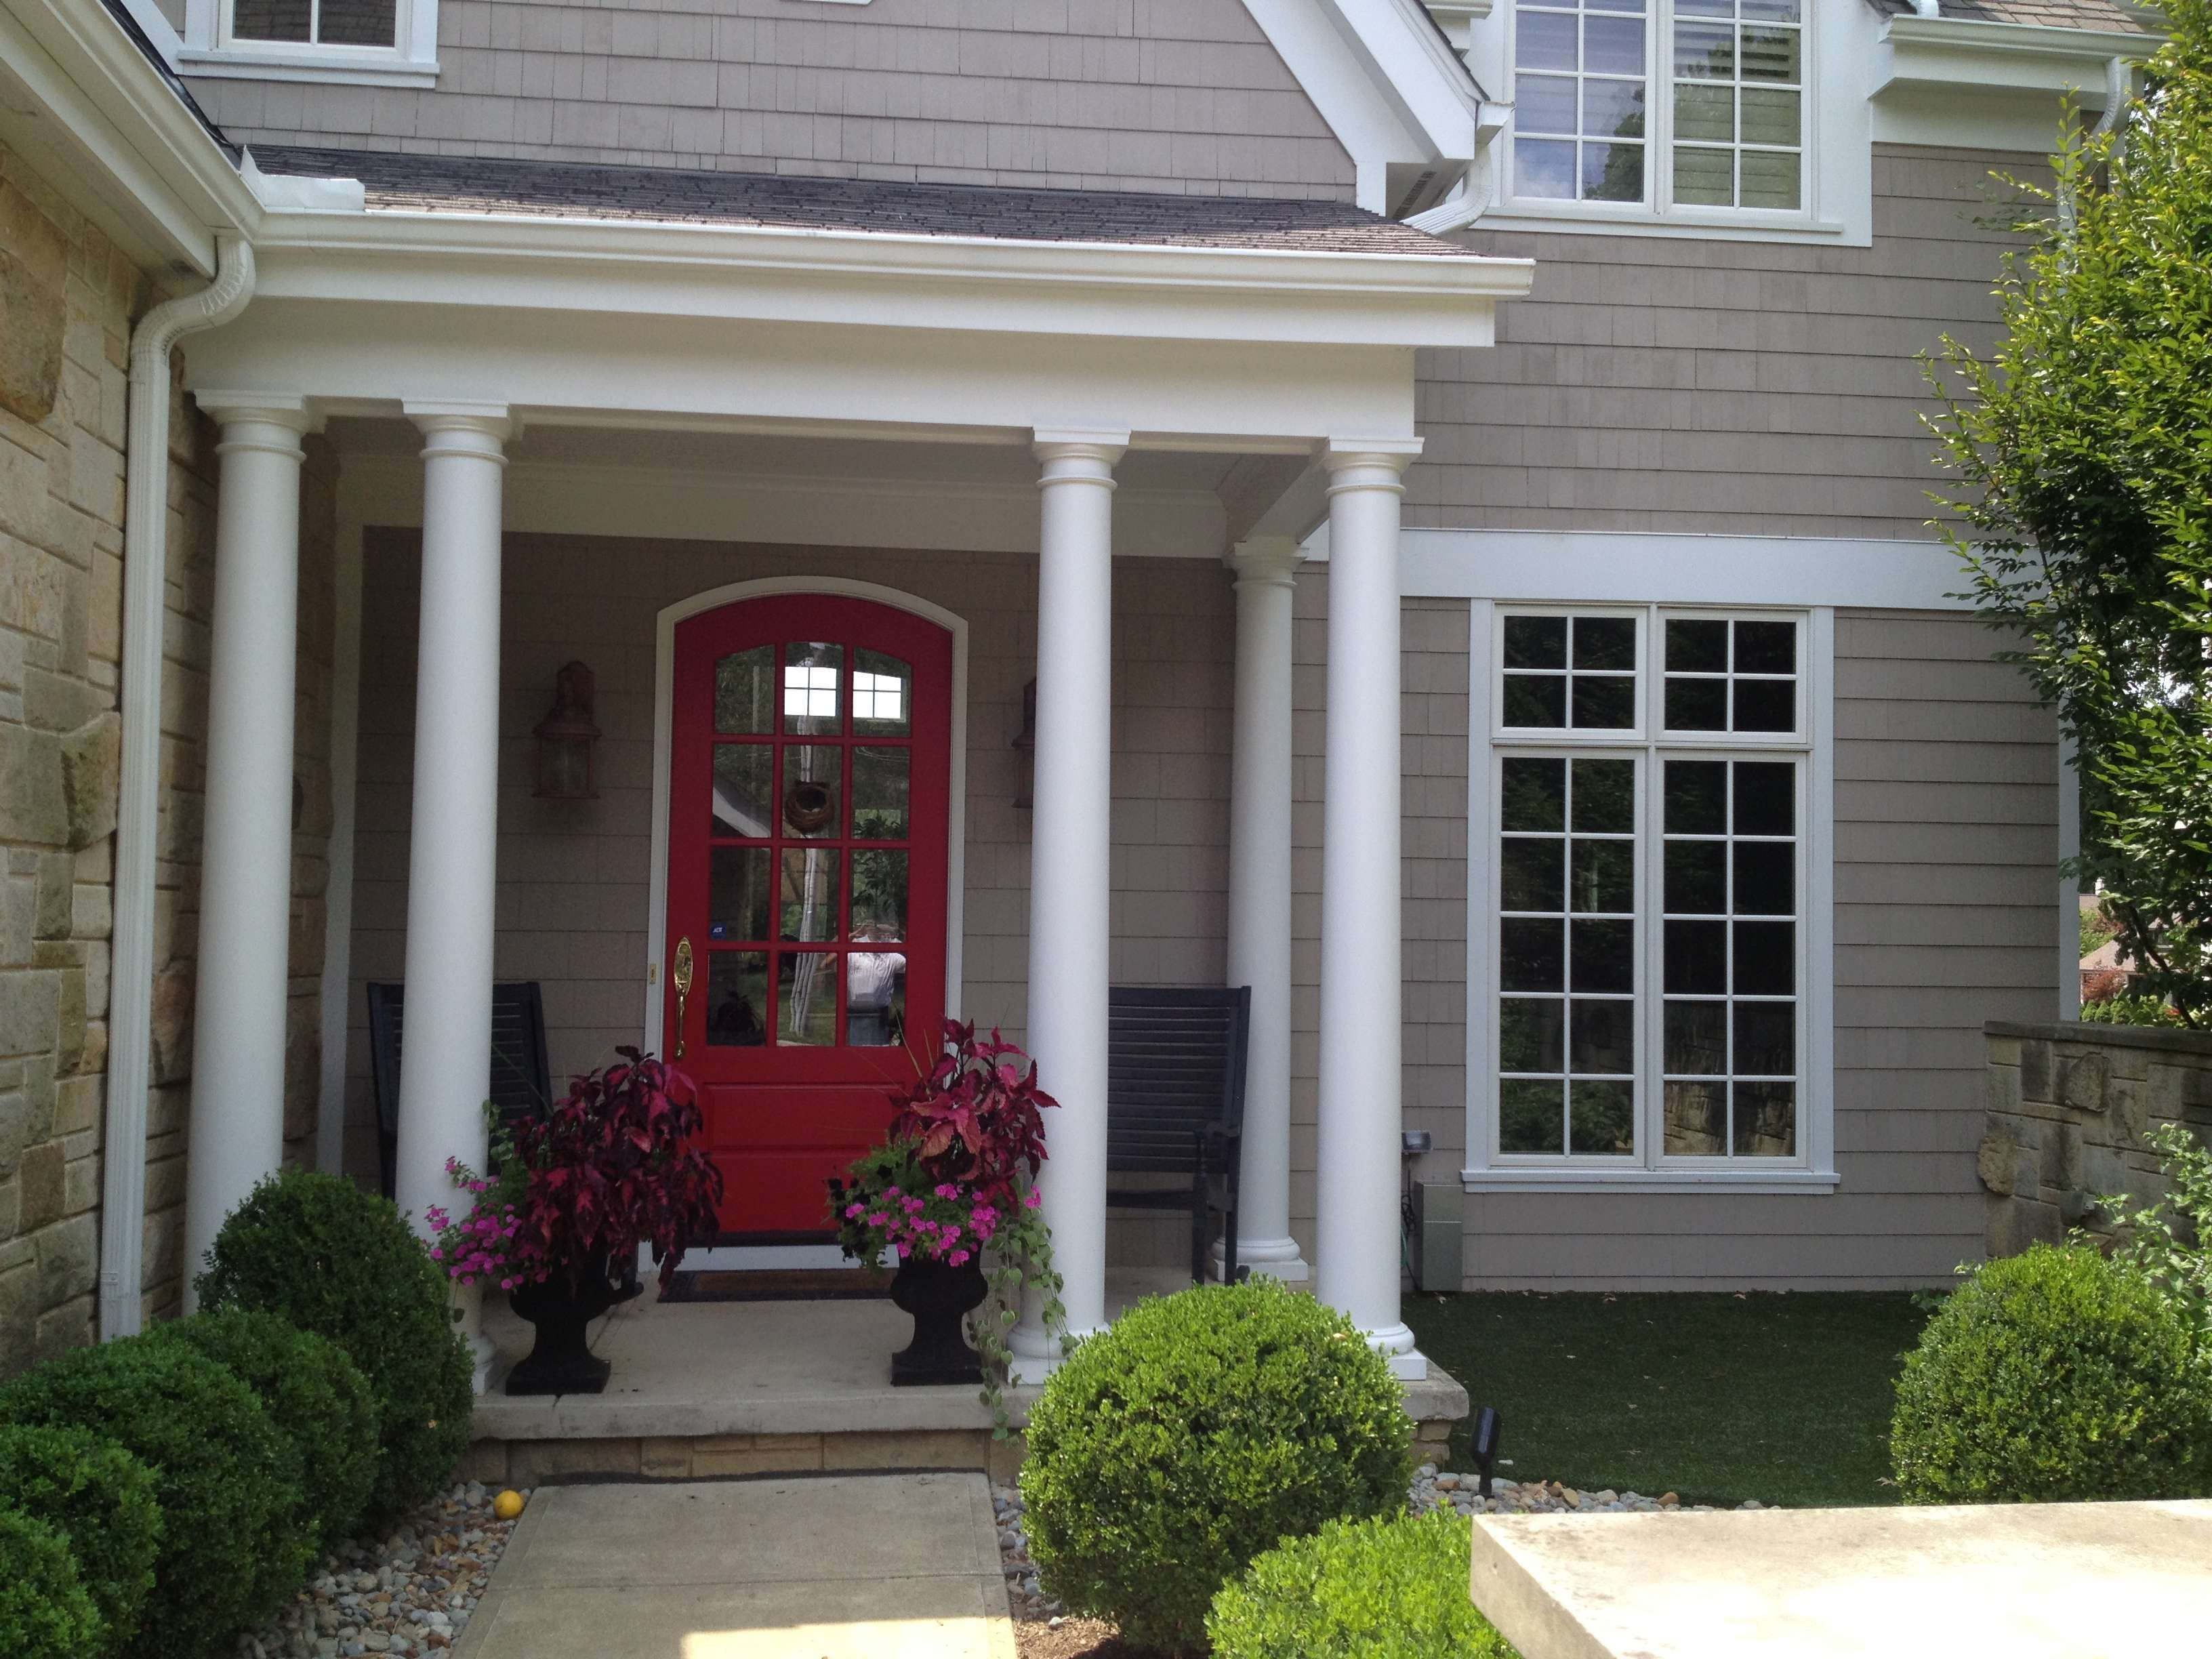 exterior house paint colors google search - Exterior House Paint Colors